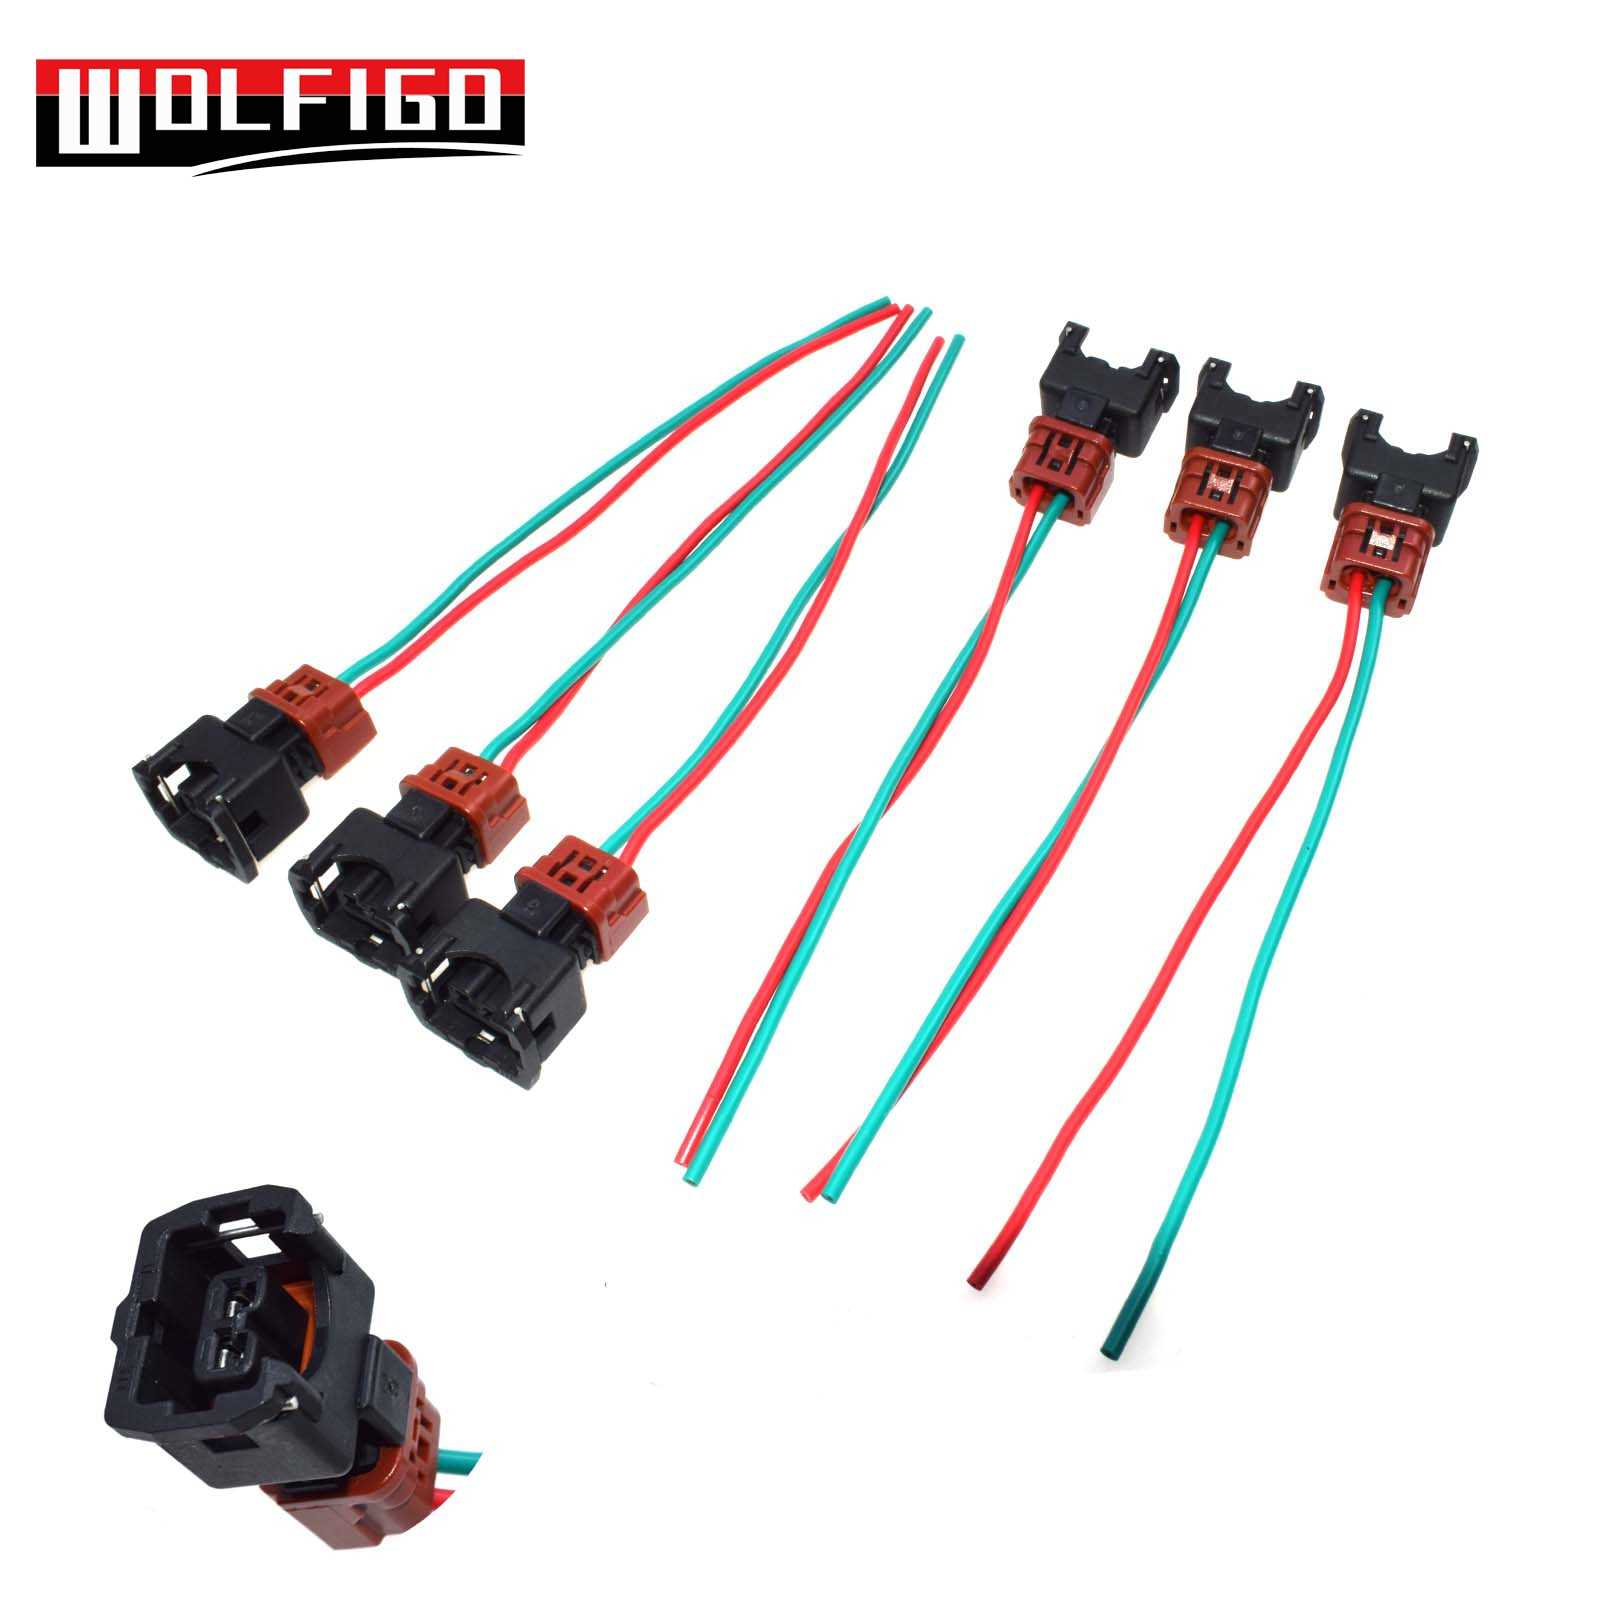 WOLFIGO 1 PC / 6PCS Fuel Injector Connector Pigtail Harness for Nissan on